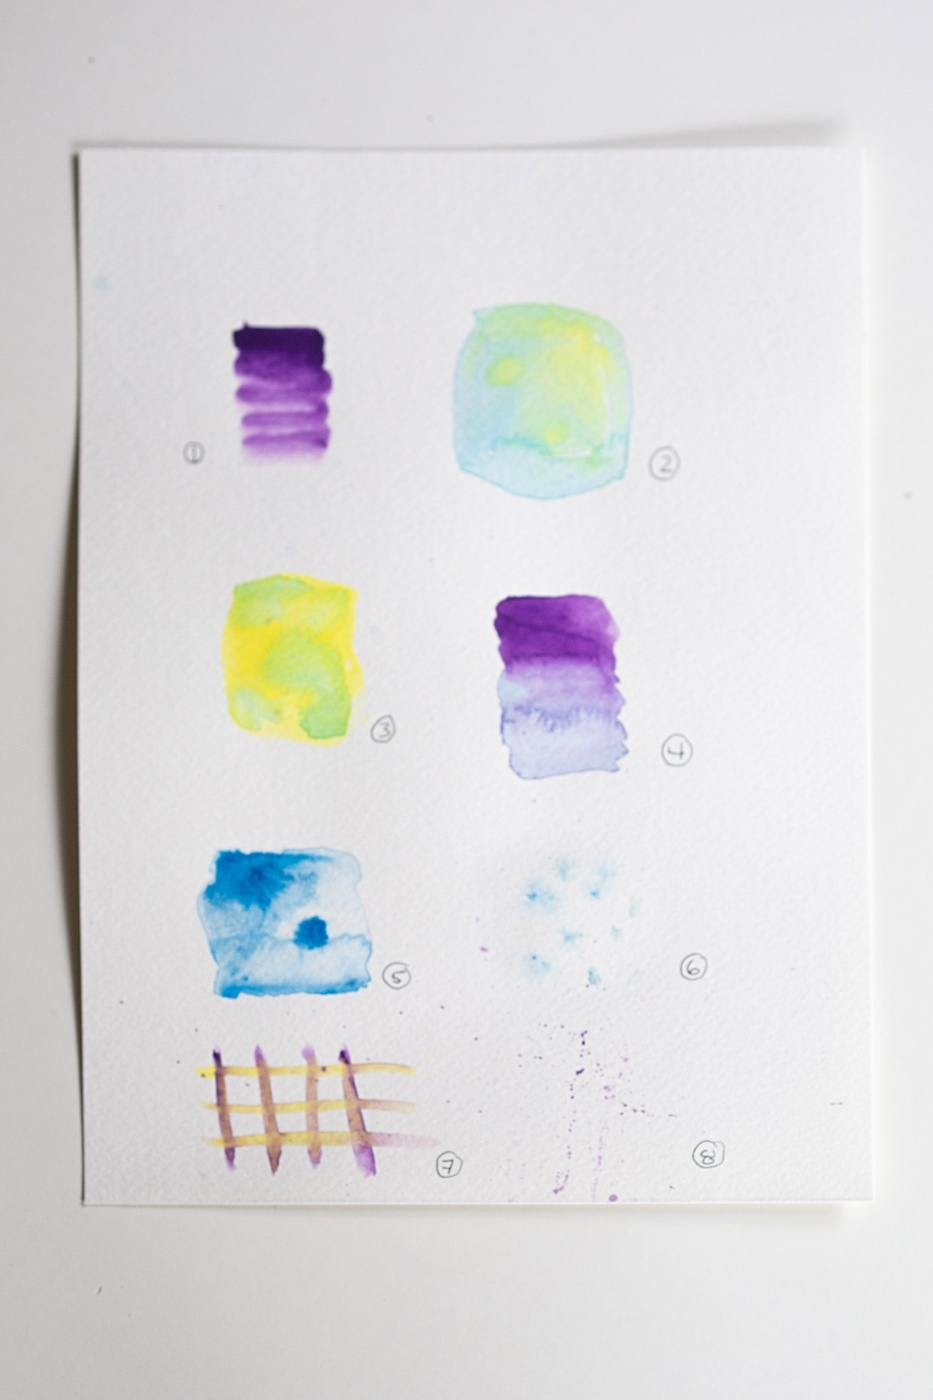 all the basic watercolor blending techniques for beginners - a how to guide